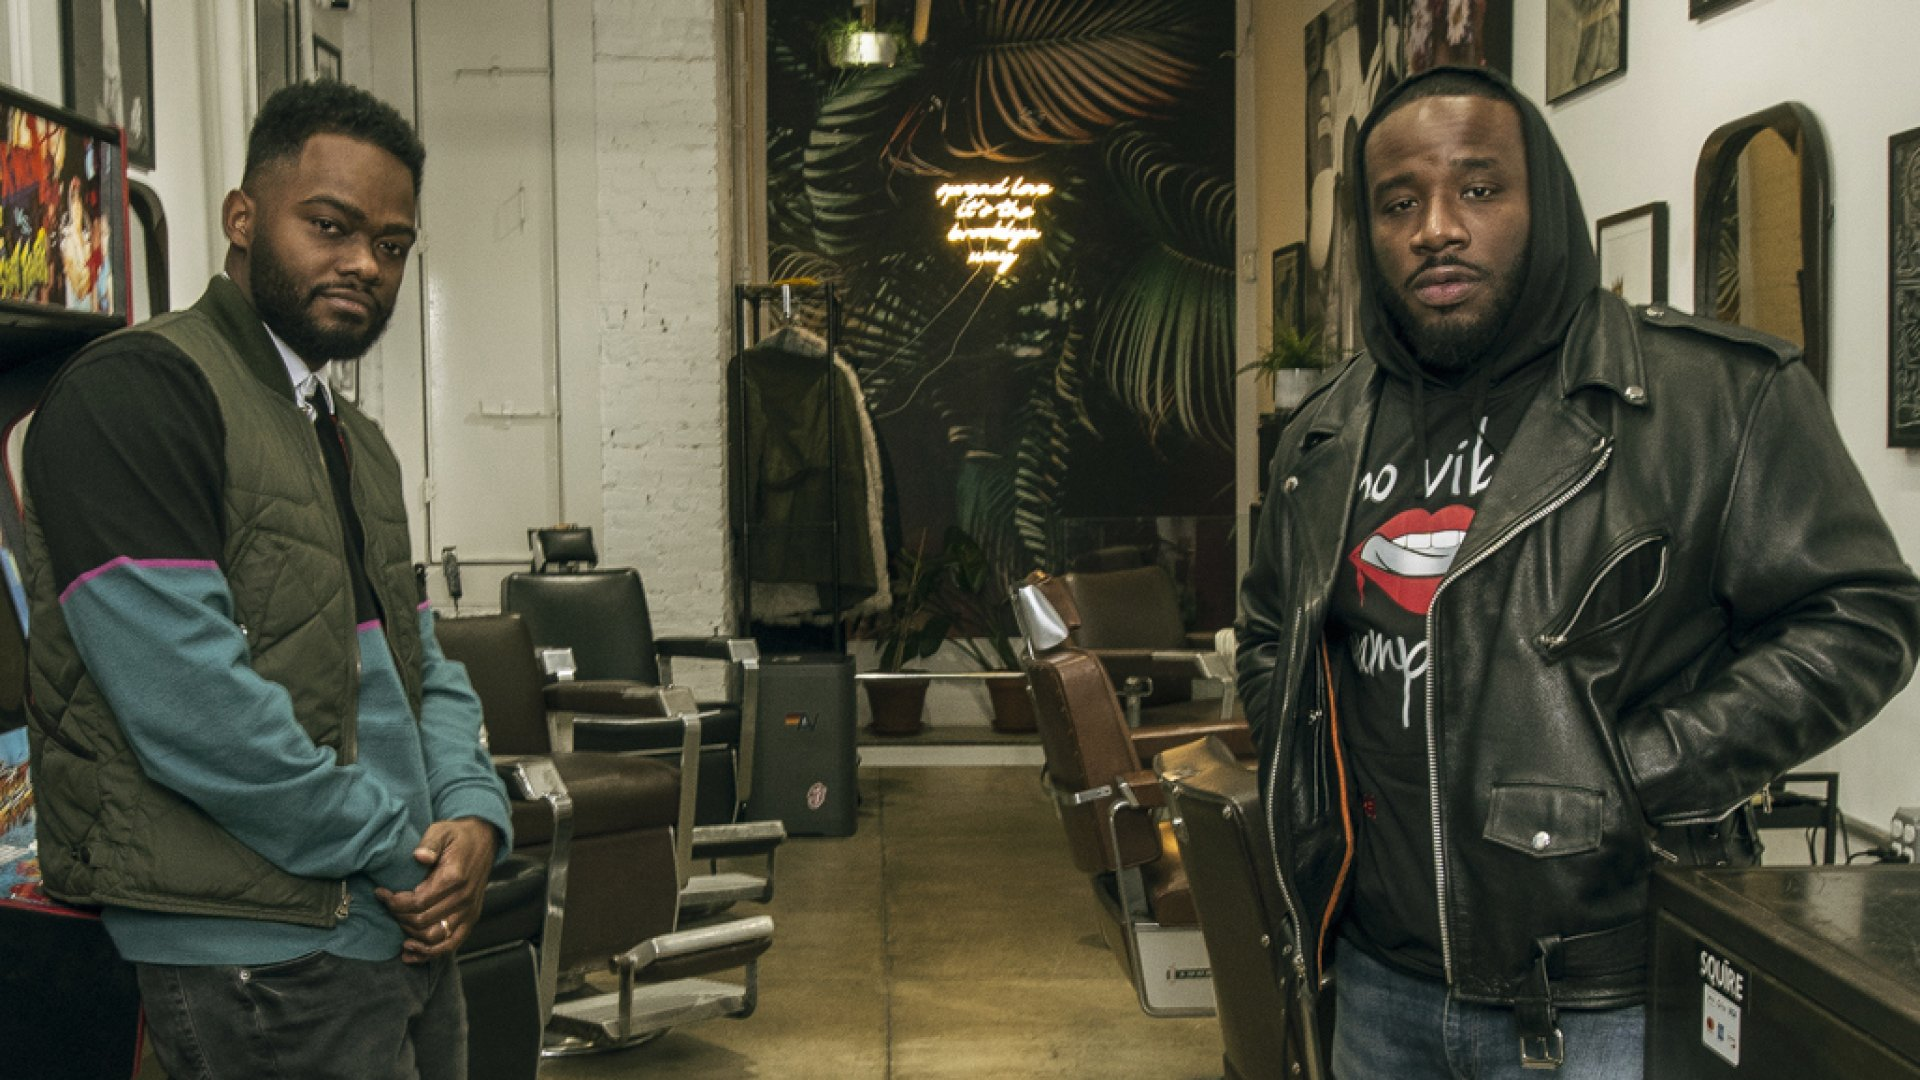 Songe LaRon and Dave Salvant at Artisan Barbershop on New York City's Lower East Side.